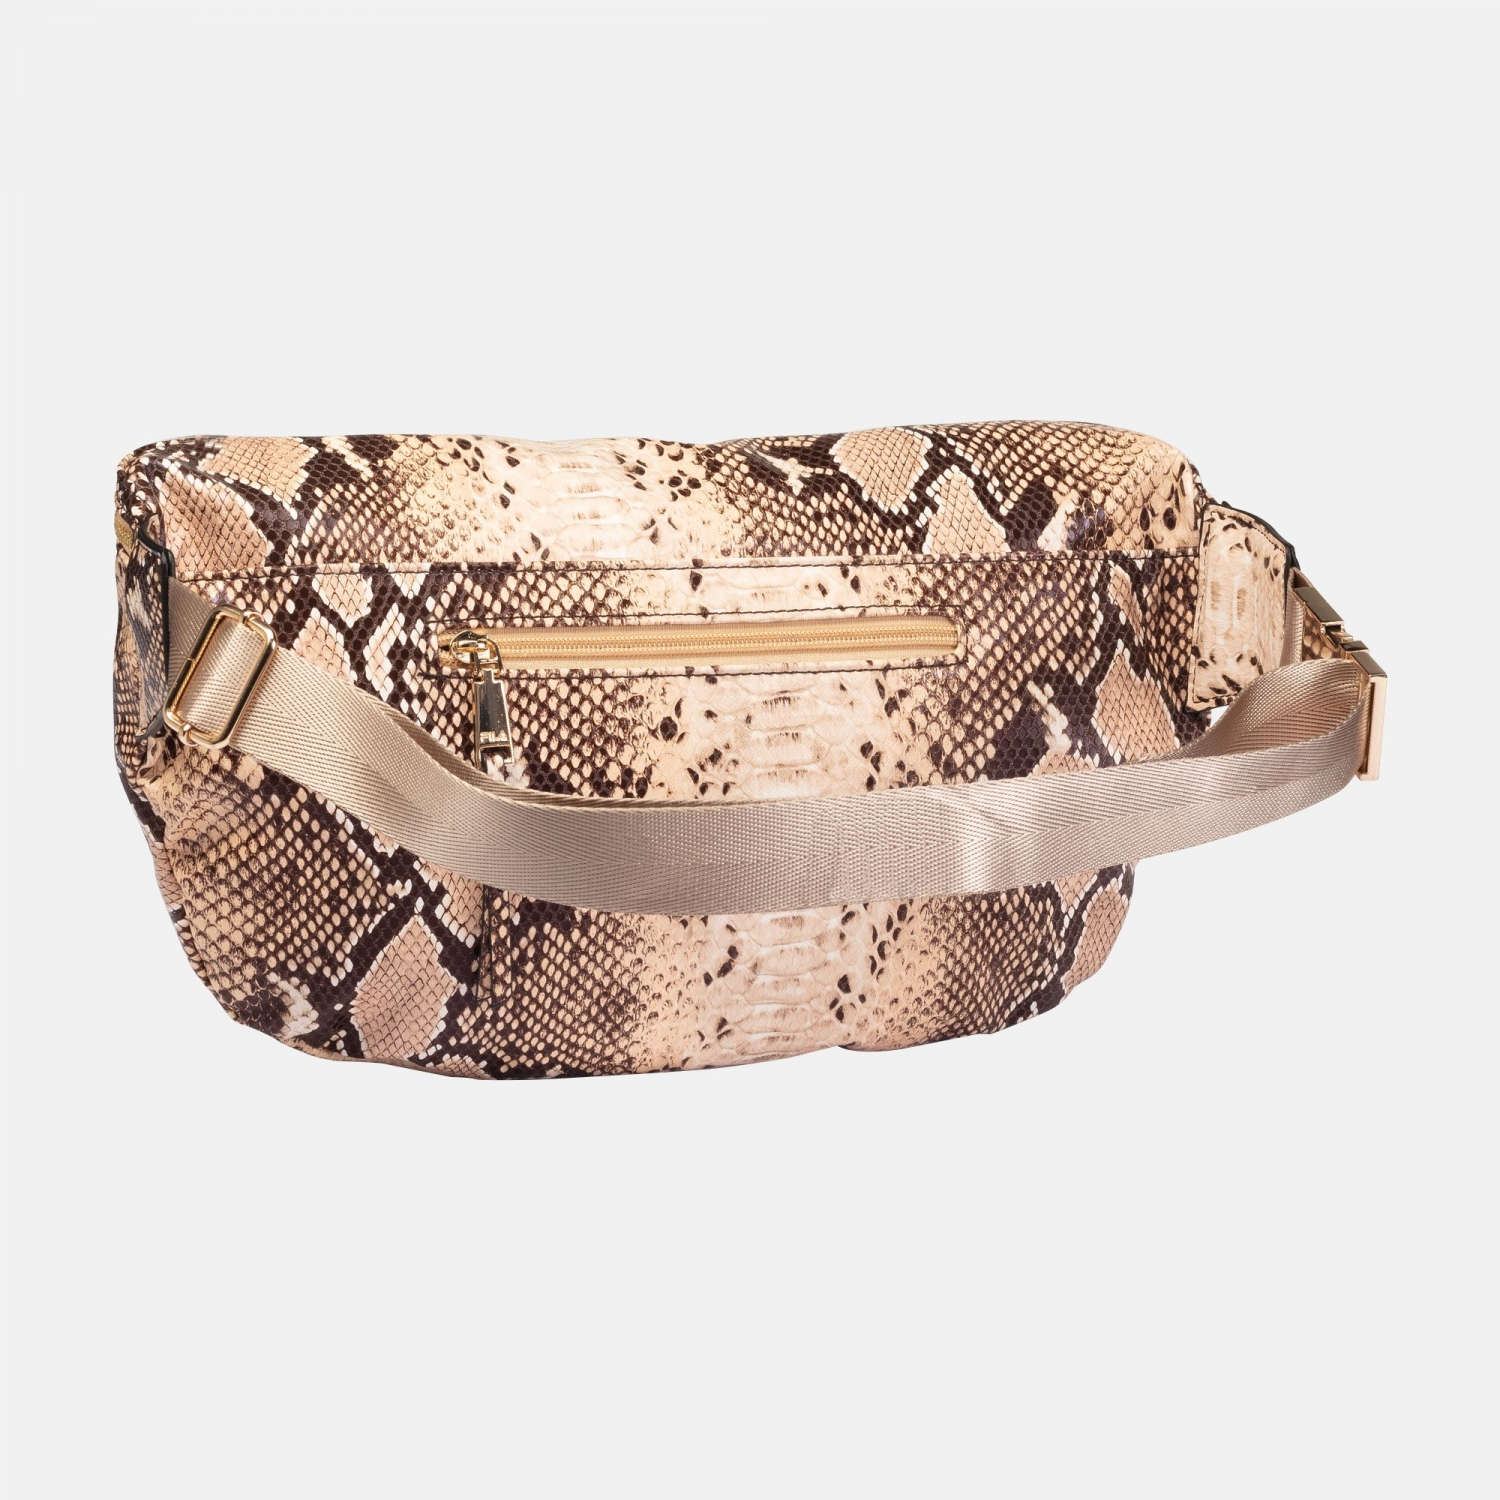 Fila Women Waist Bag gold-snake-aop Bild 2